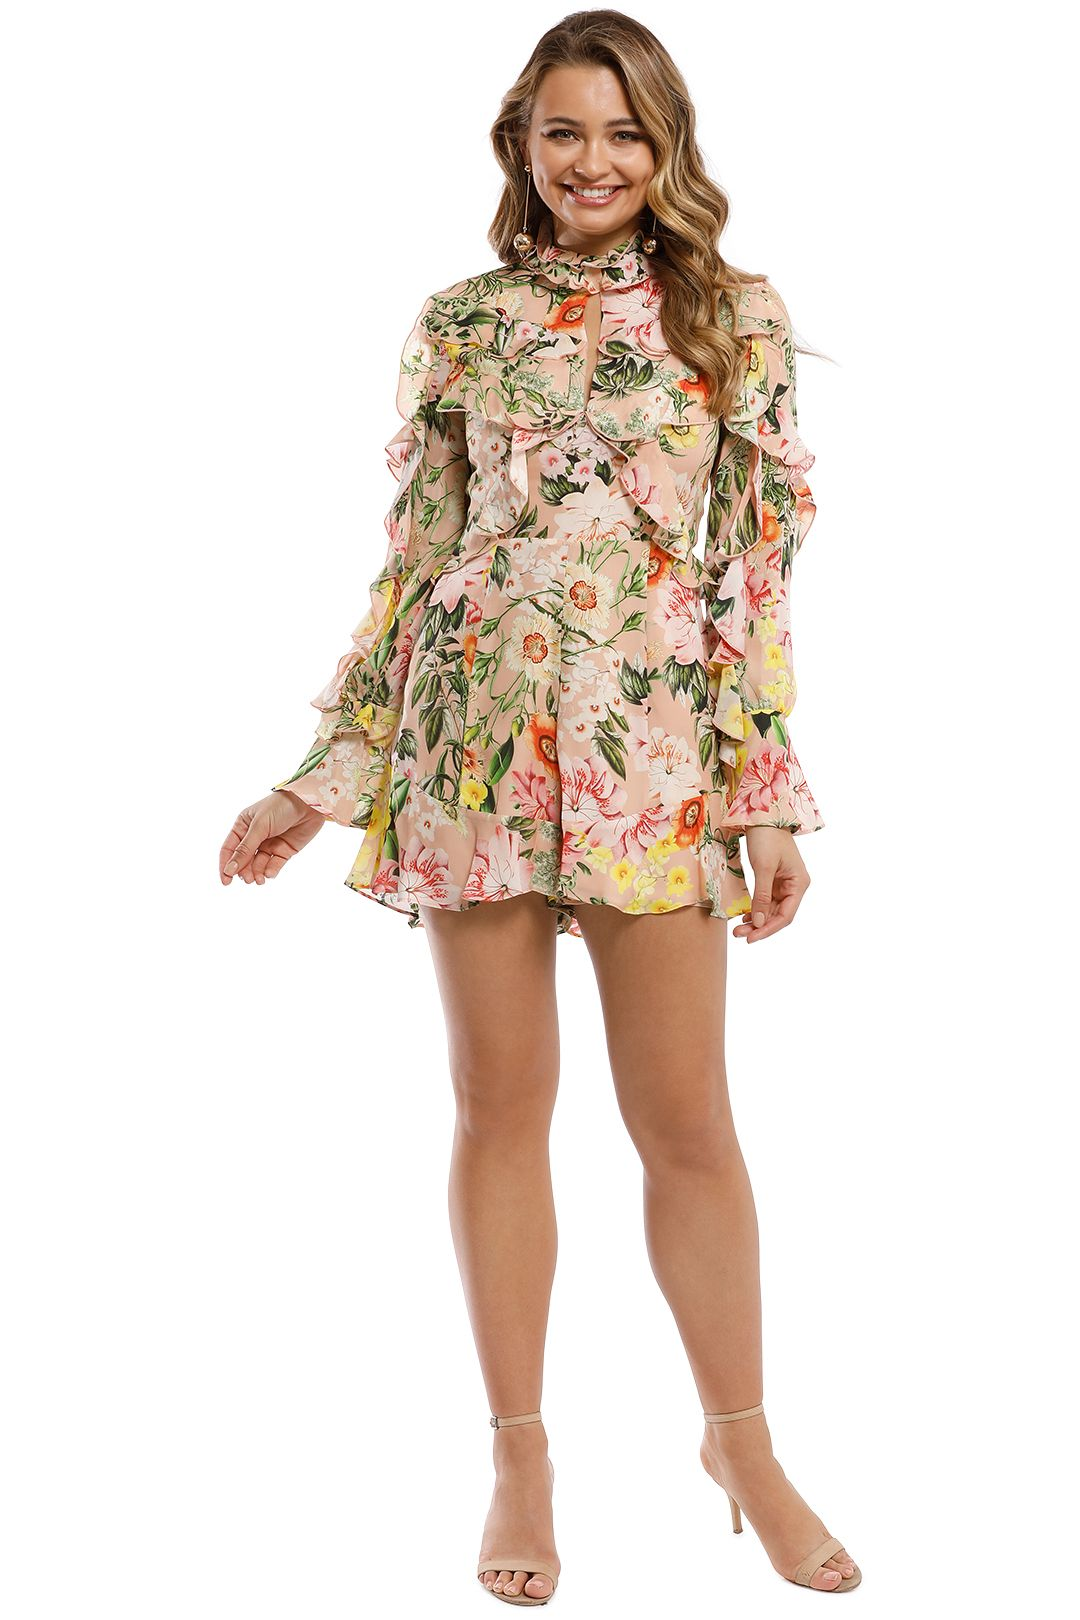 Nicholas - Aveline Ruffle Layer Playsuit - Pink Multi - Front